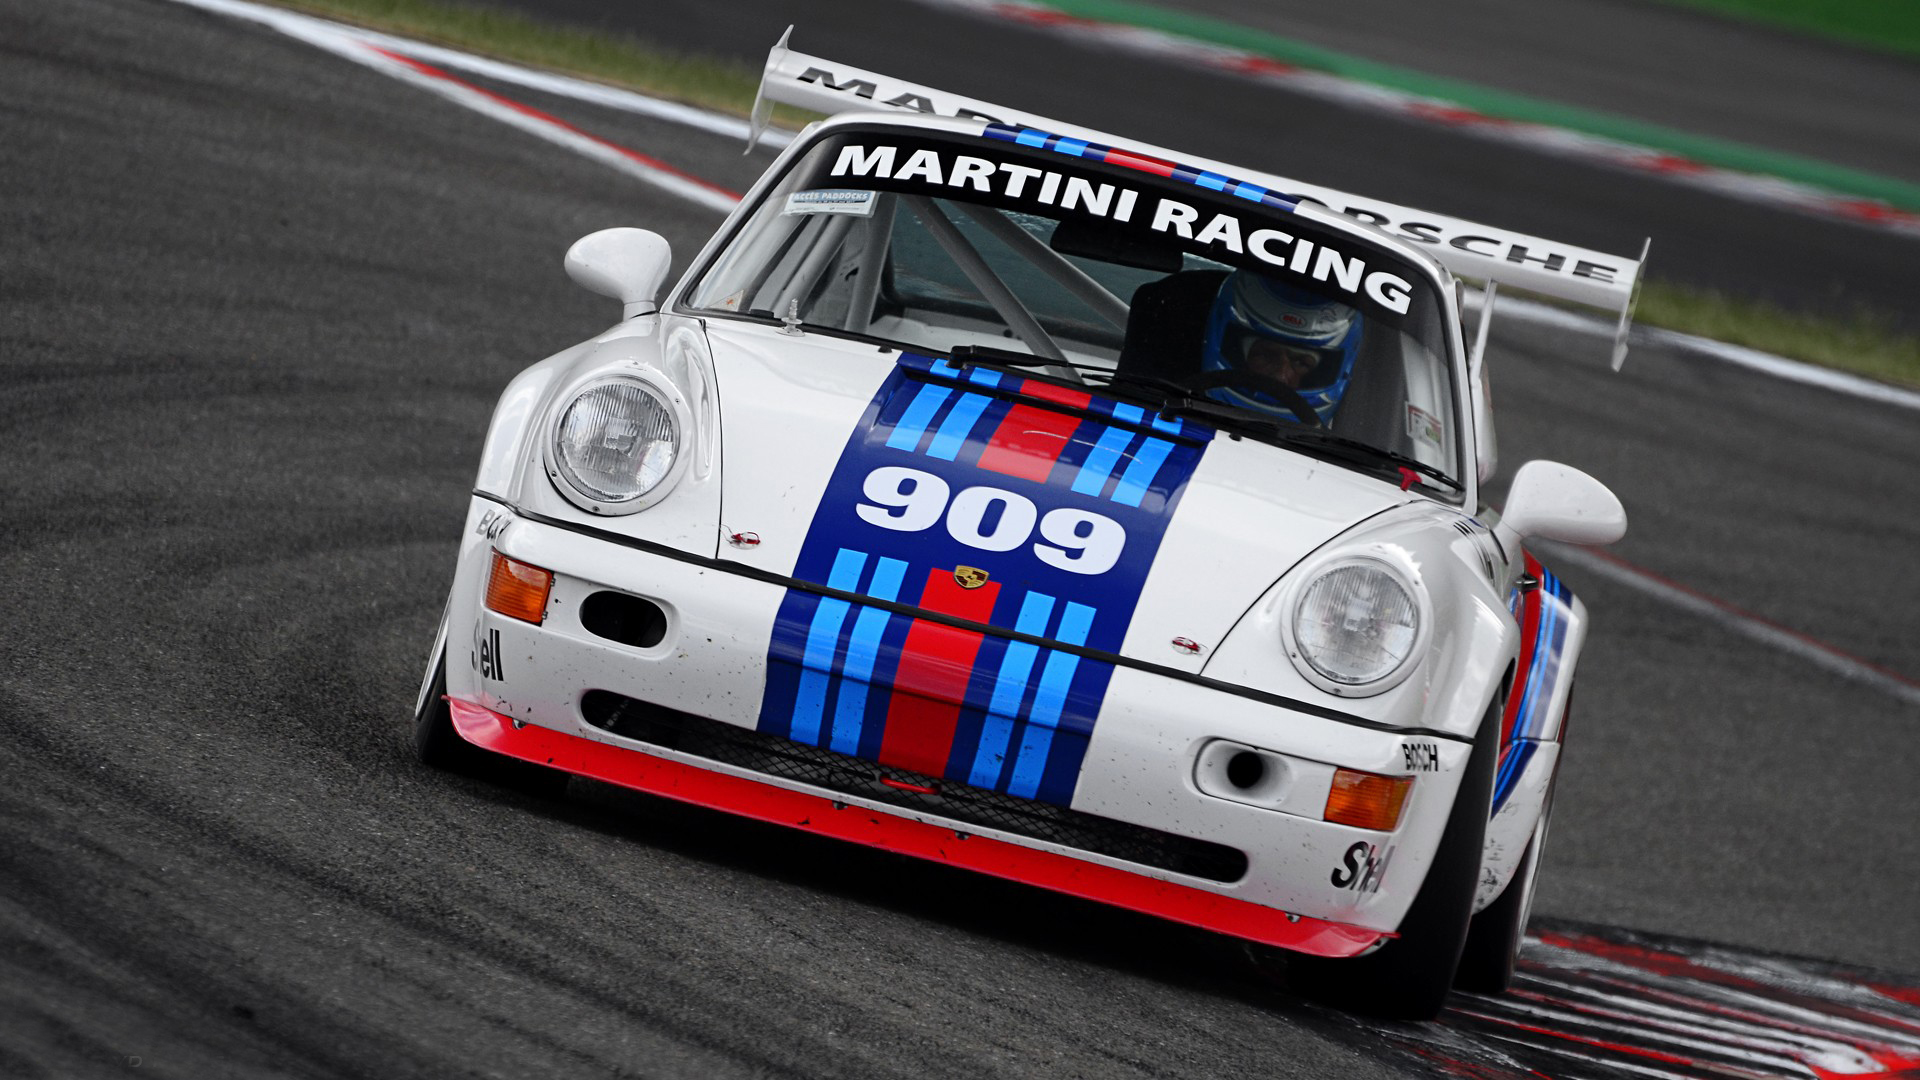 martini racing cars hd wallpaper1080p